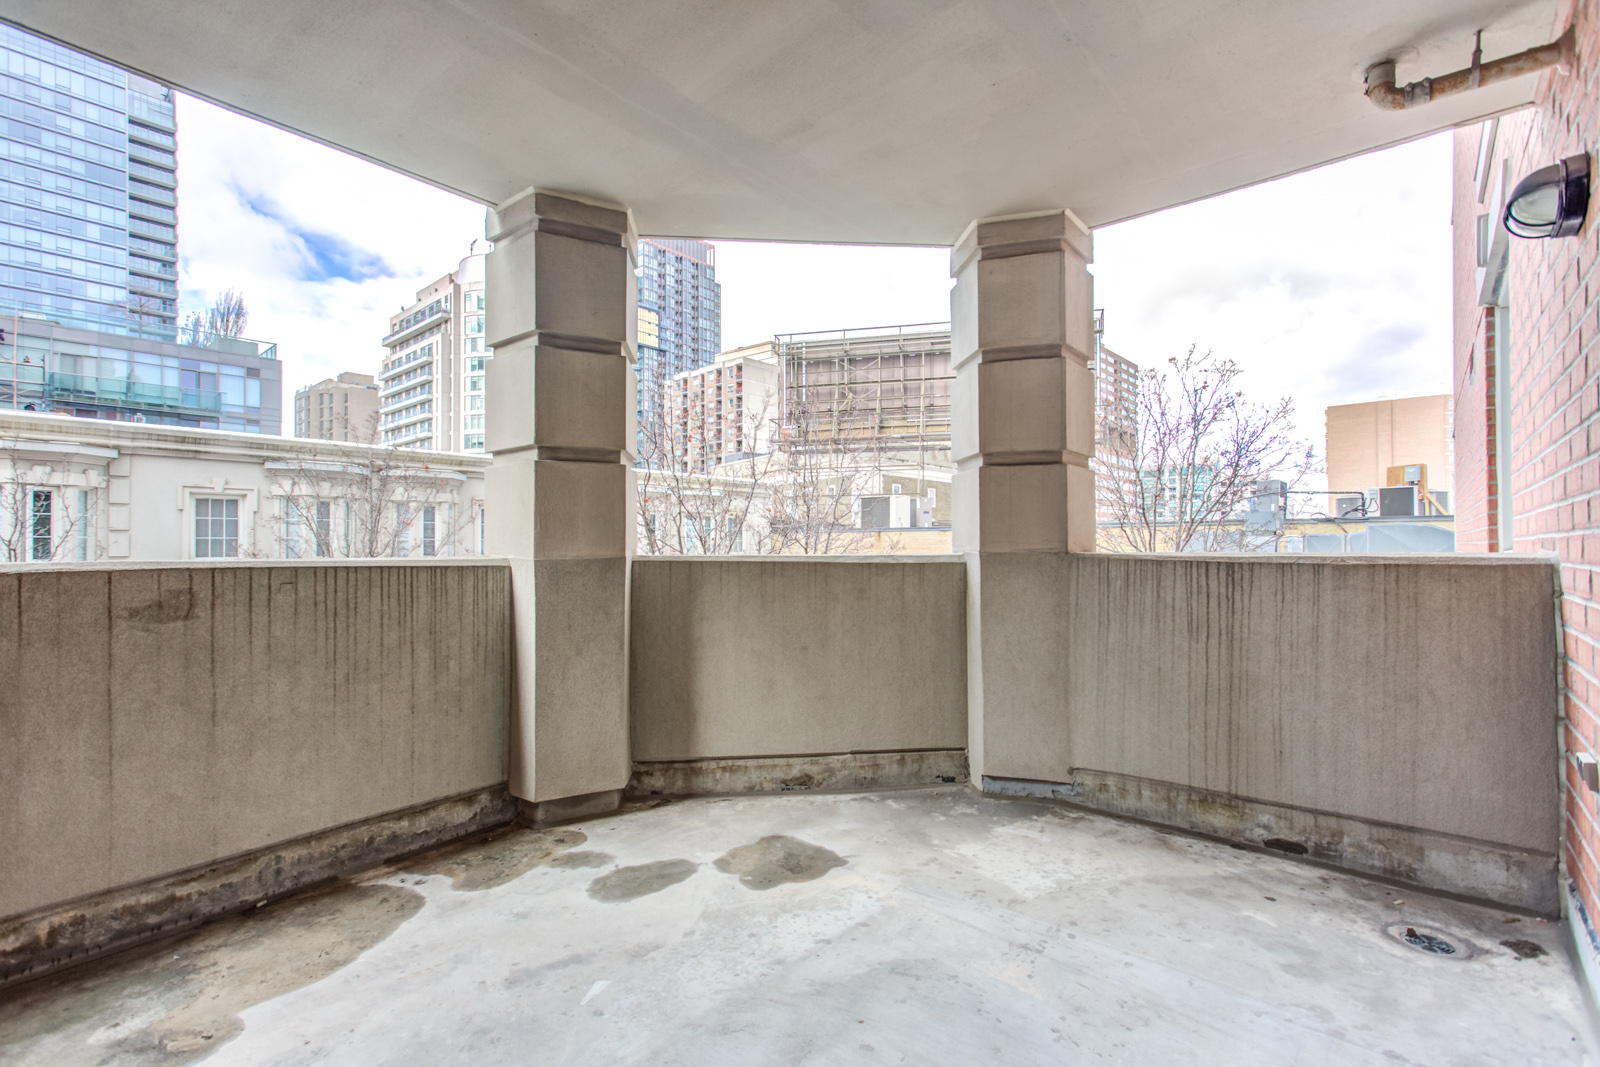 Concrete balcony of 20 Collier St Unit 408 with columns and view of Yorkville beyond.